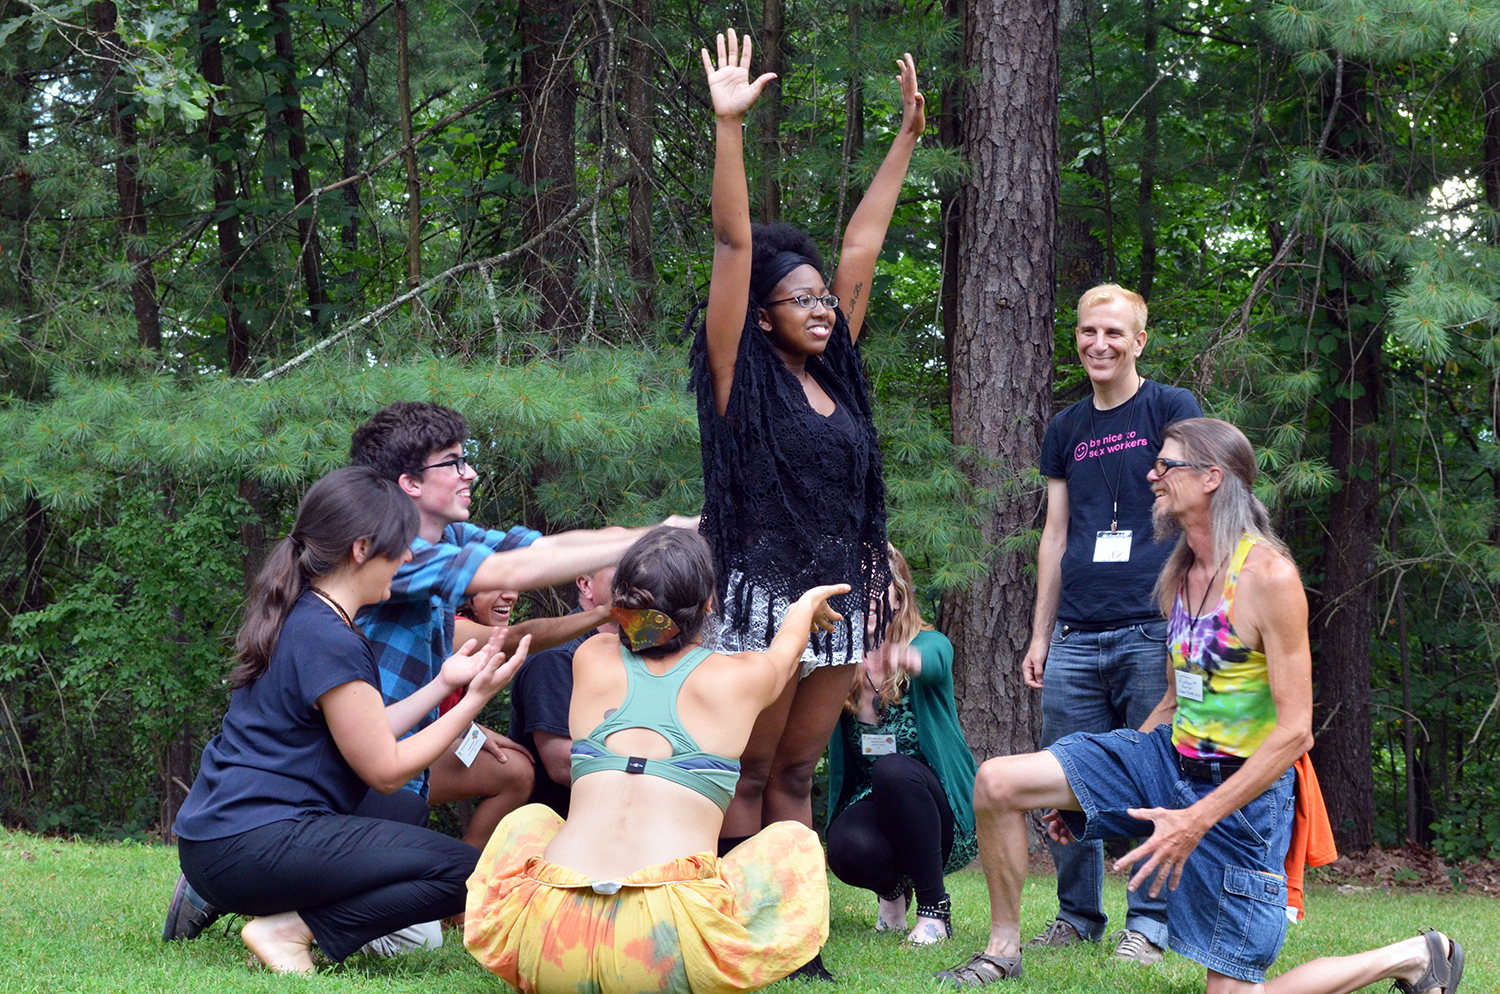 Participants in the Beyond Coal & Toward New Power Learning Exchange at Alternate ROOTS created short theatrical works inspired by their story circles. (photo by Nicole Garneau)